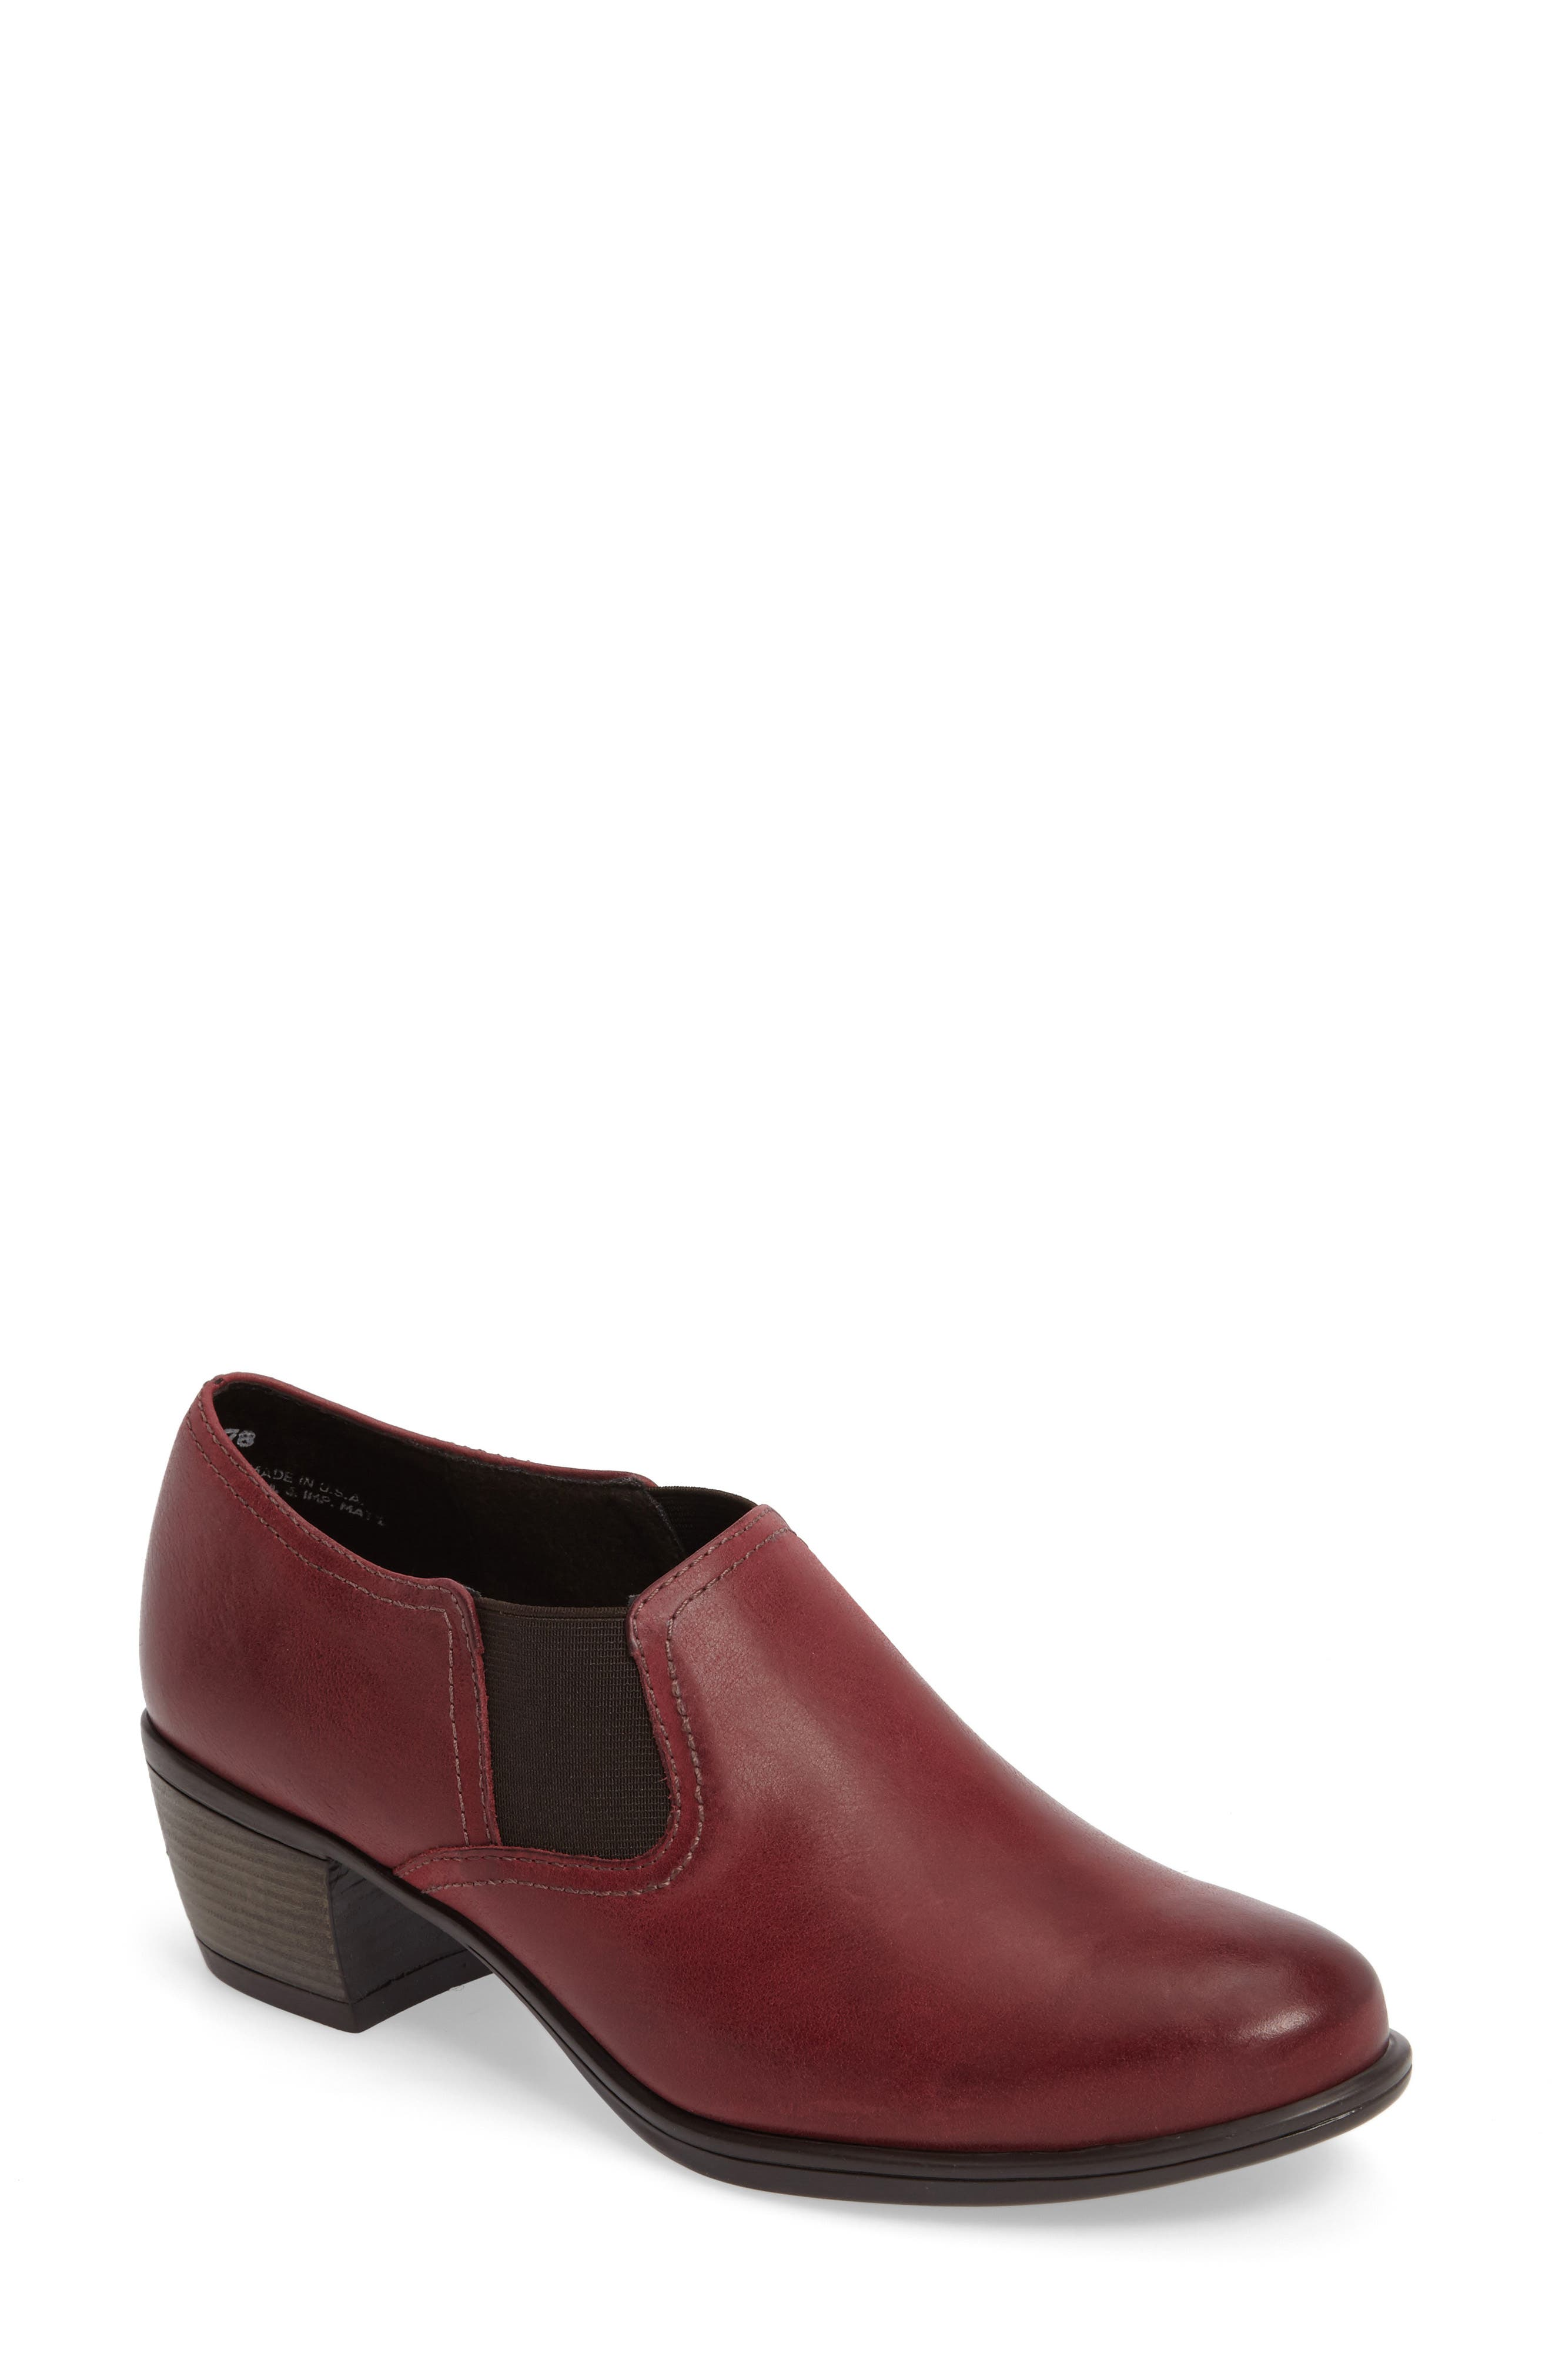 Frisco Bootie,                             Main thumbnail 1, color,                             Wine Leather